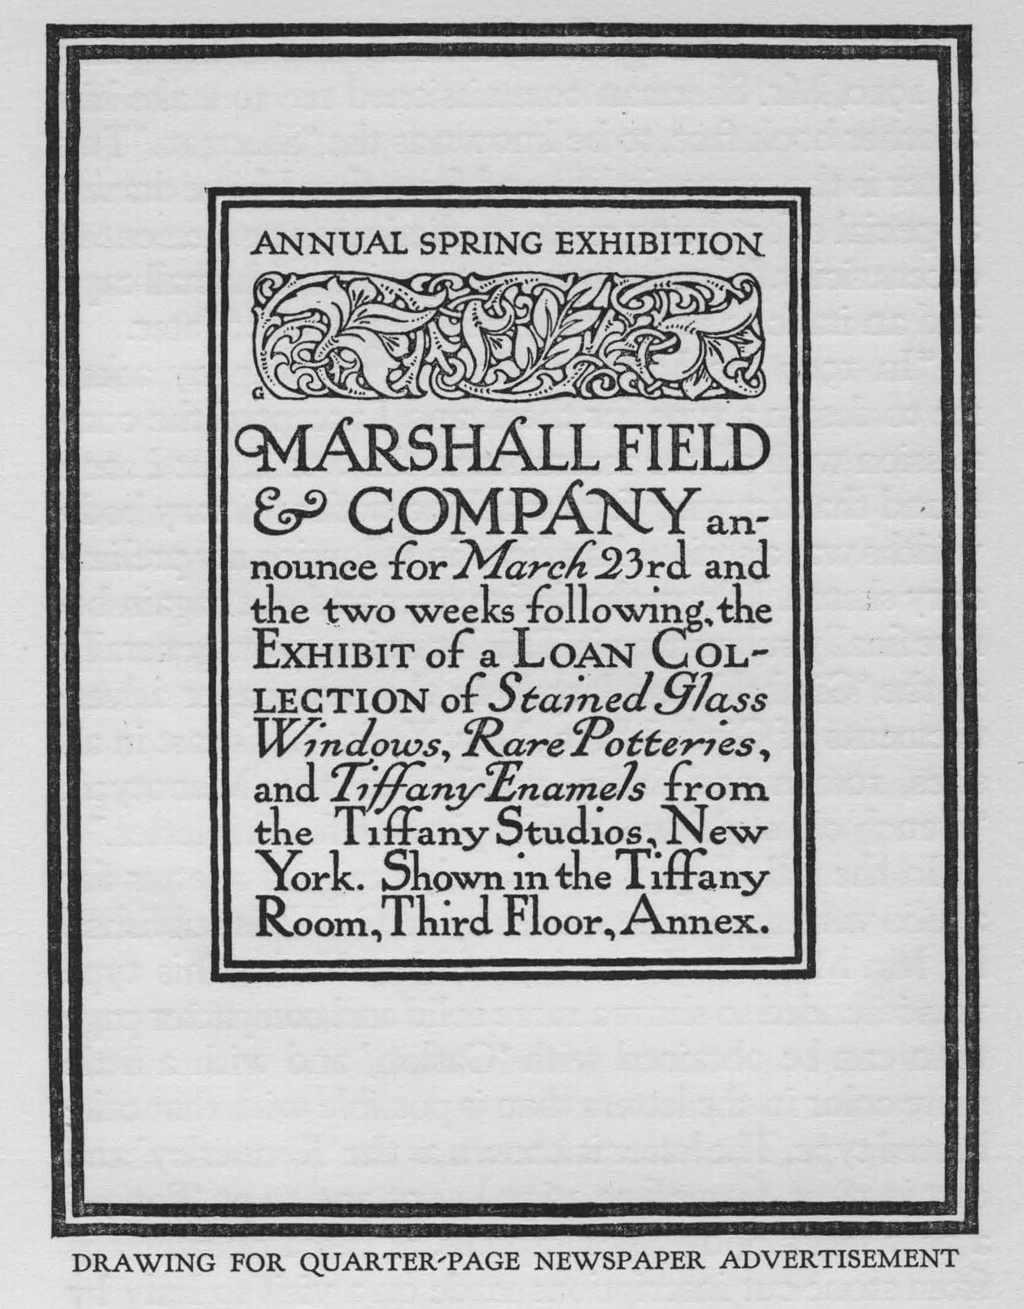 Quarter-page advertisement for Marshall Field & Co. Reproduced in Temple Scott. Design by F.W. Goudy.